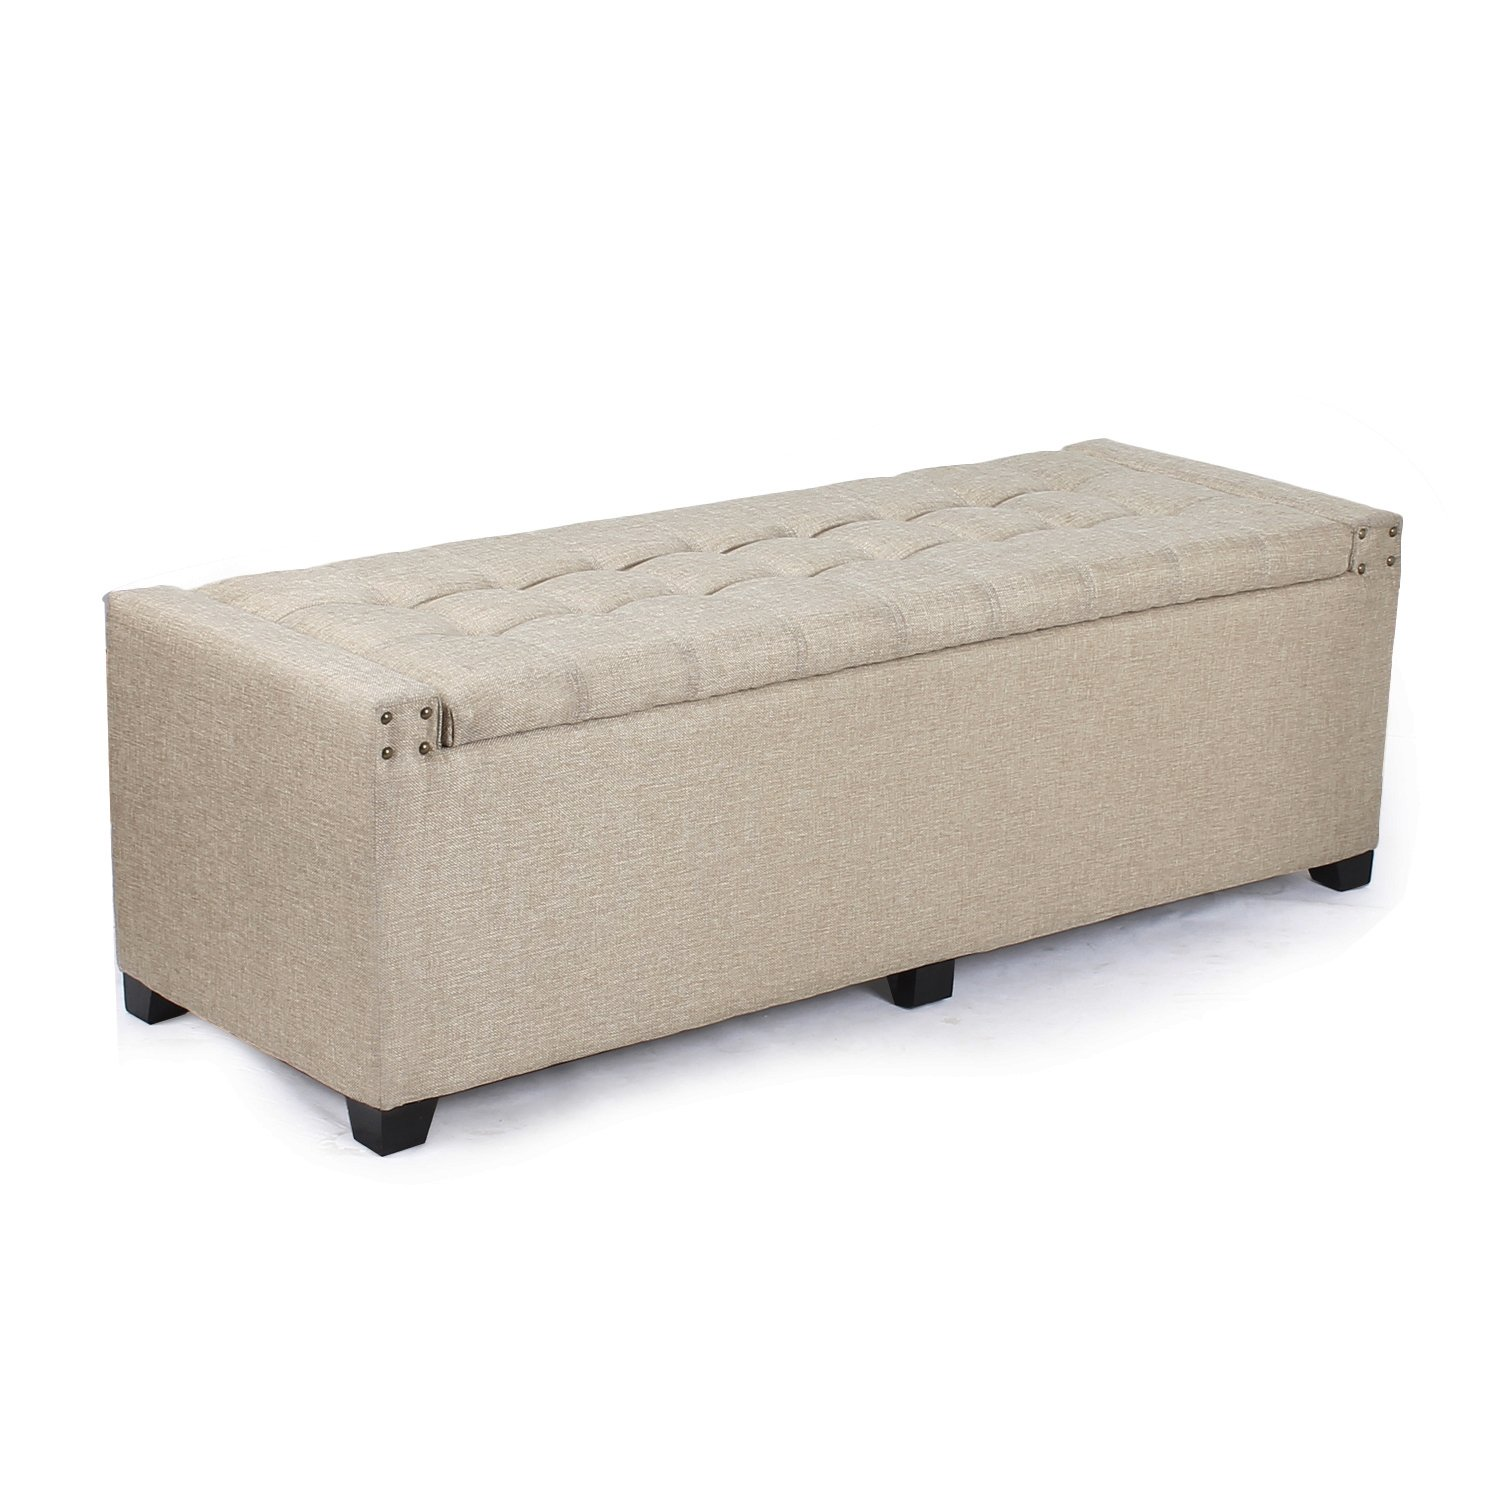 DecentHome Rectangular Storage Ottoman Bench Footstool with Solid Wood Legs (Cream Fabric)